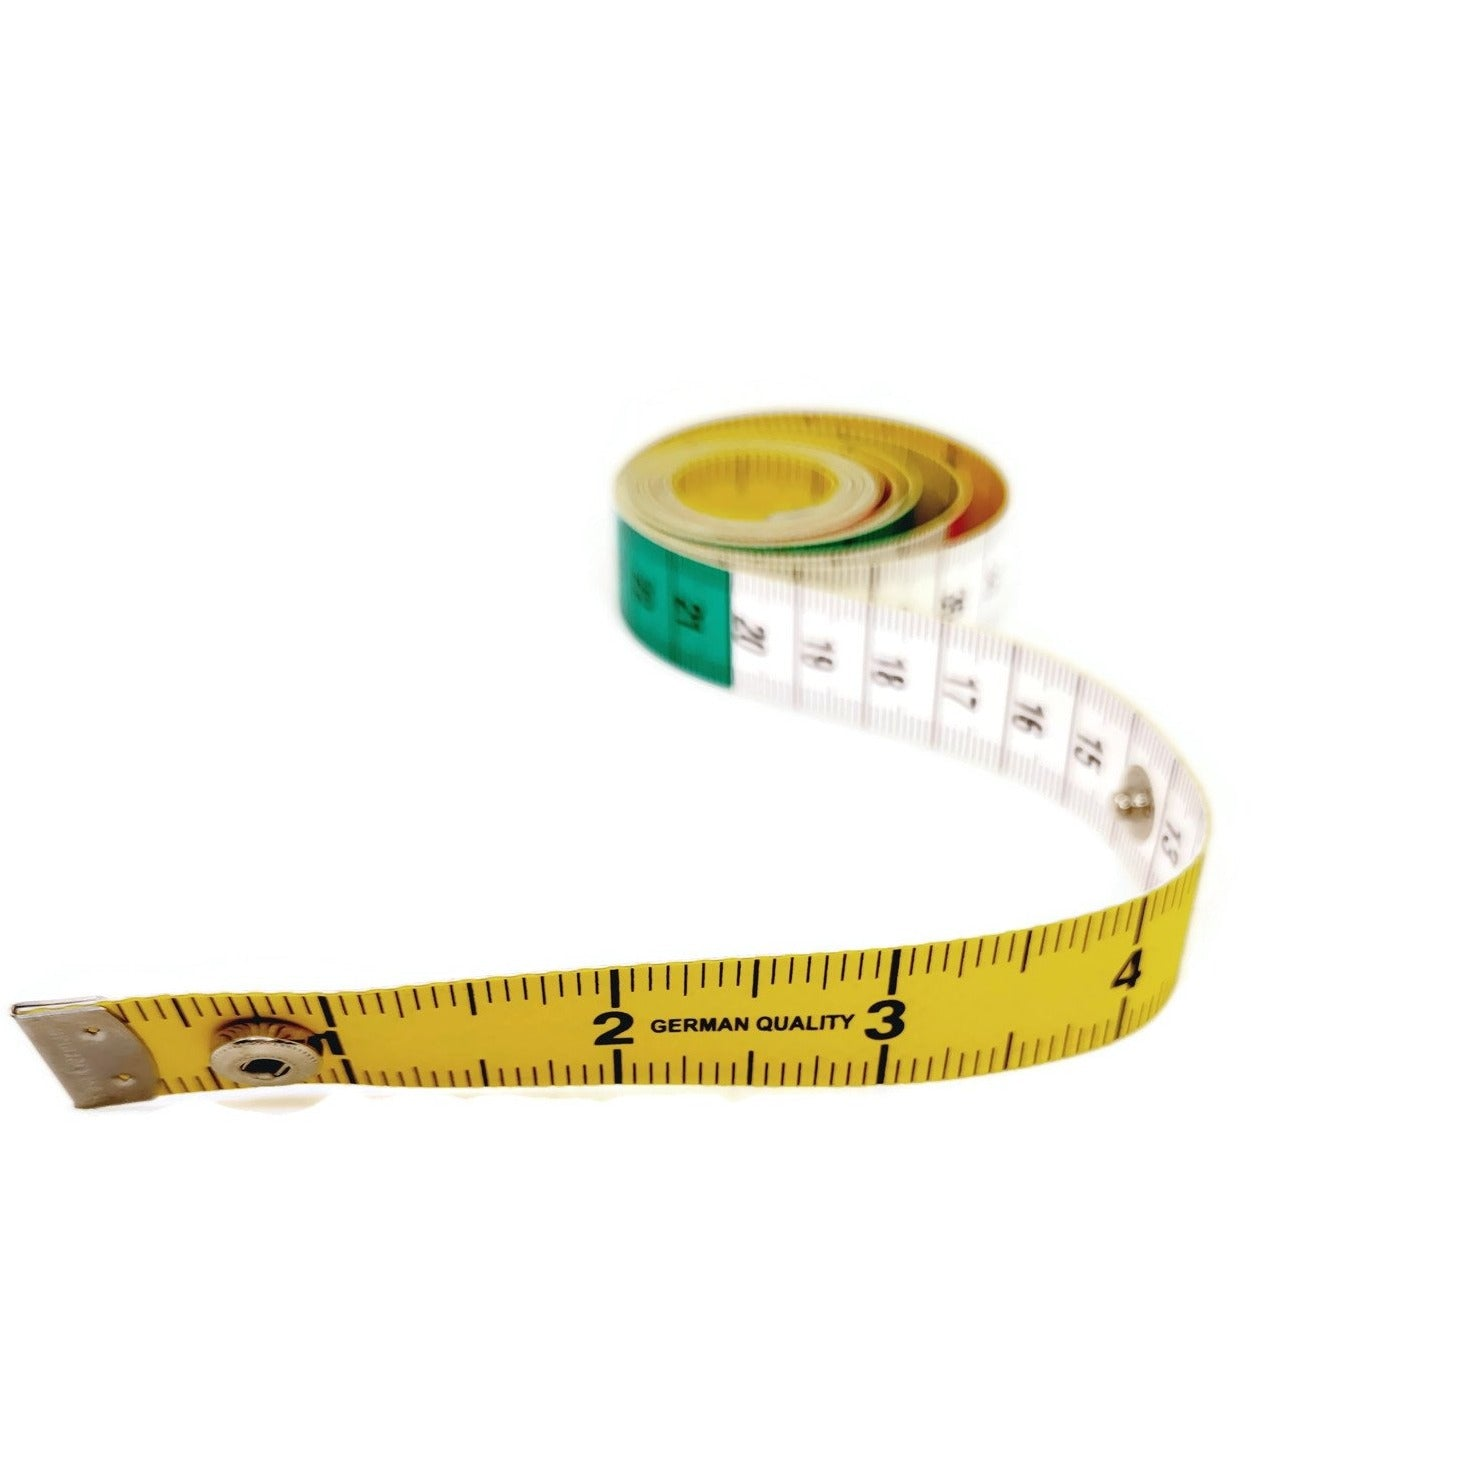 Tape measure 150 cm (60 inches)